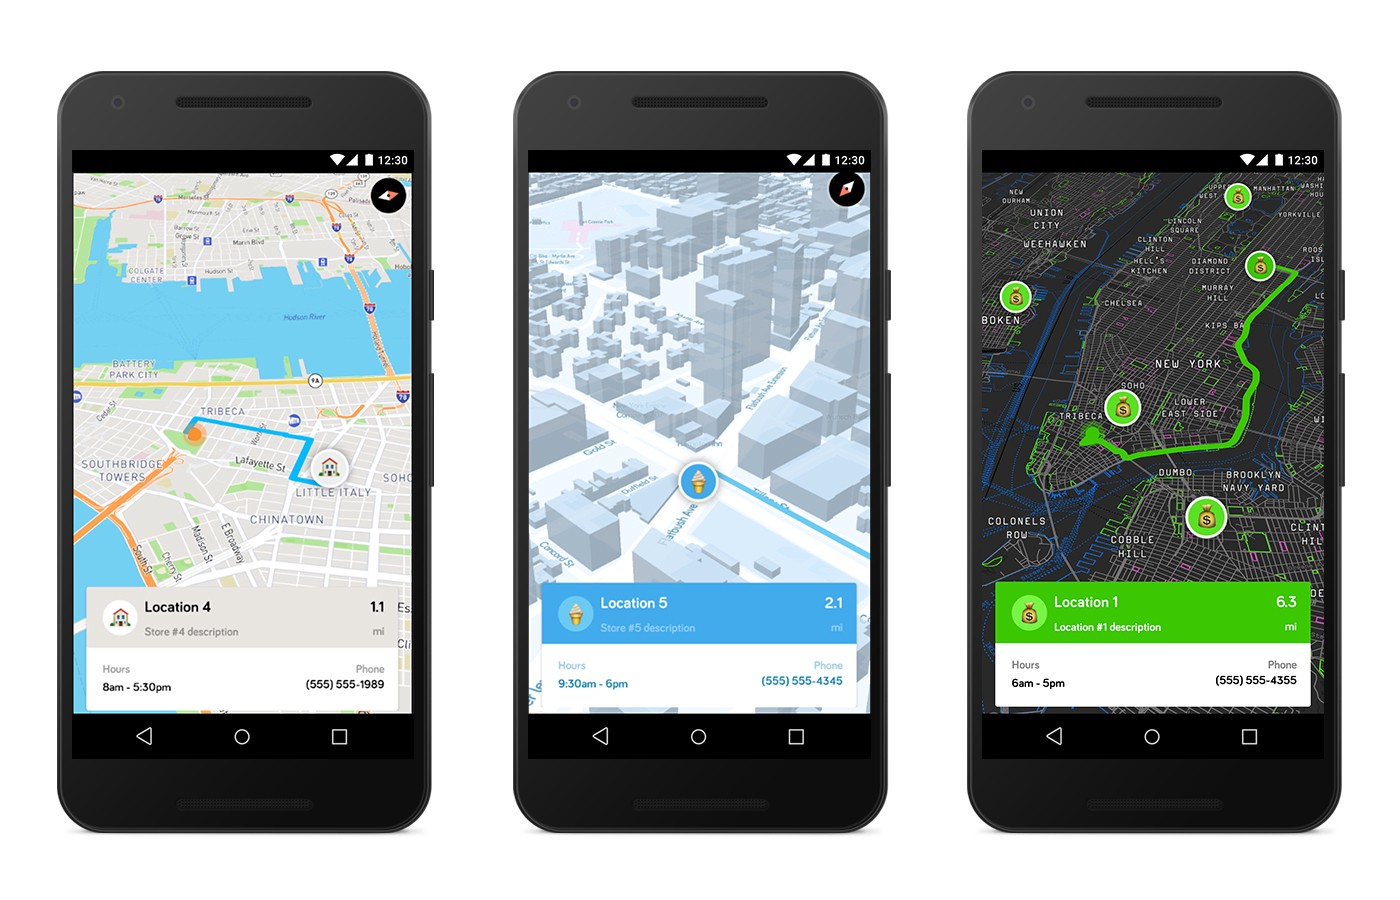 Store Locator Kit for Android - Points of interest